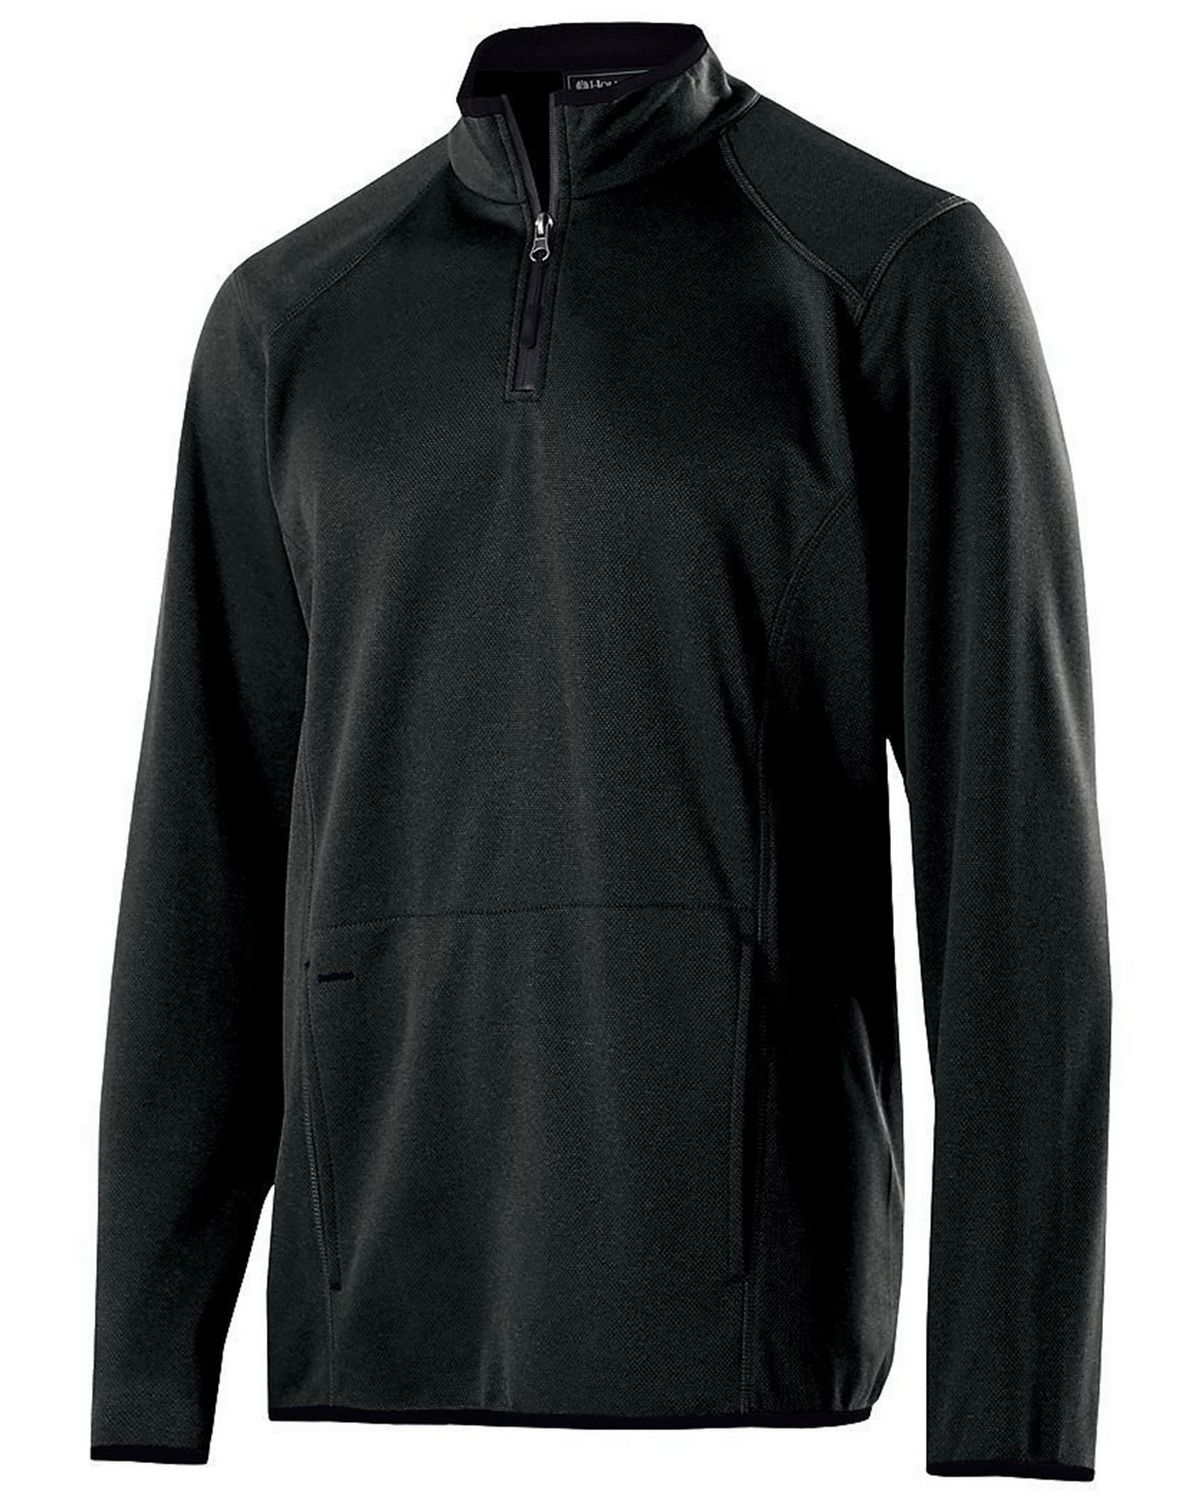 Holloway 229176 Adult Polyester Fleece Pullover - Black Heather - XS 229176